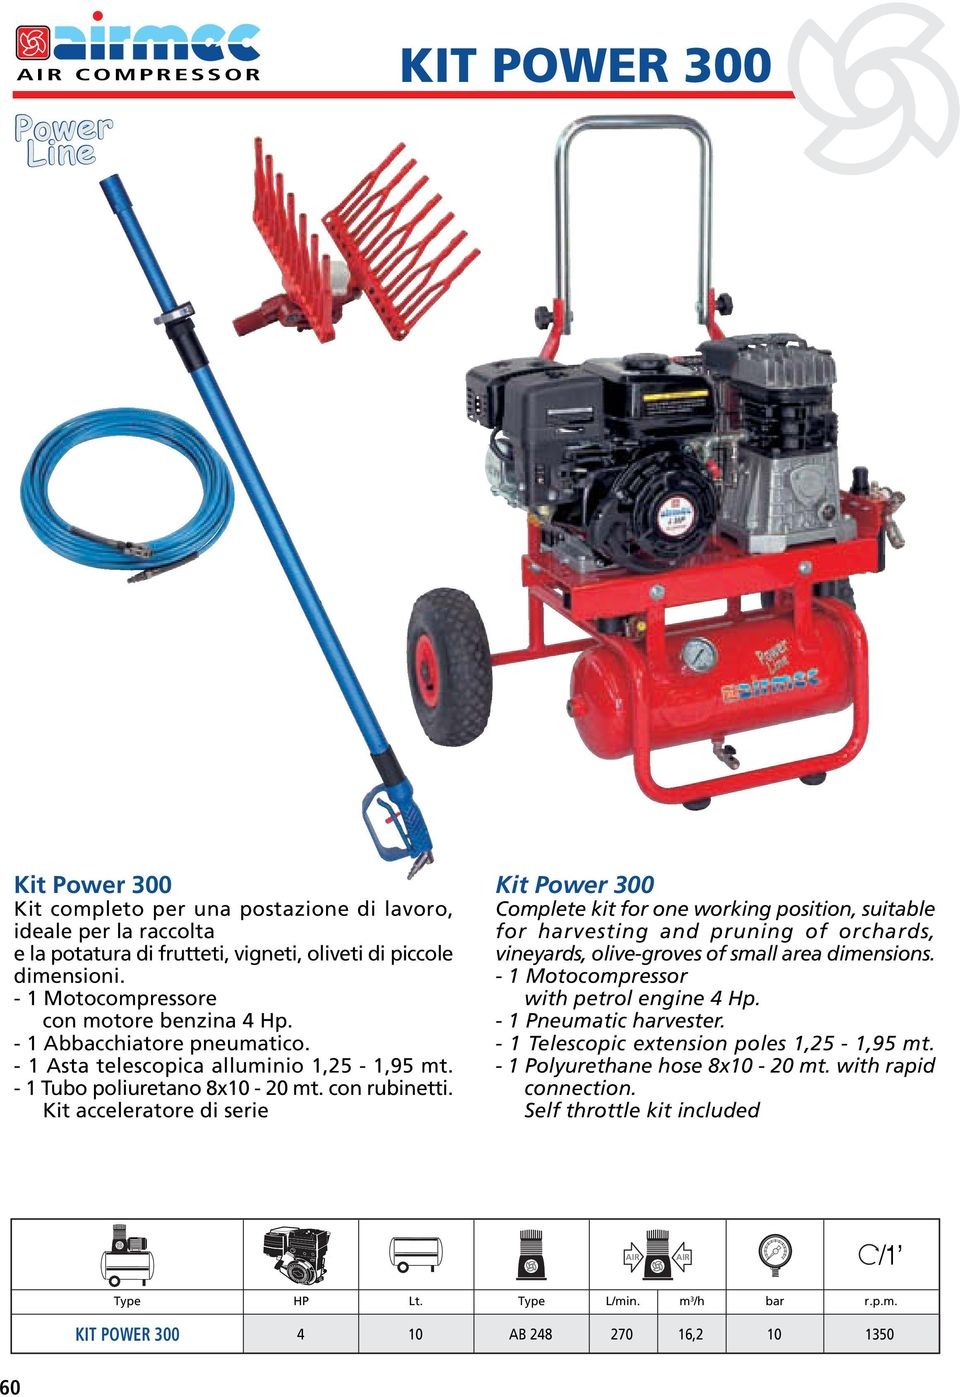 Kit acceleratore di serie Kit Power 300 Complete kit for one working position, suitable for harvesting and pruning of orchards, vineyards, olive-groves of small area dimensions.